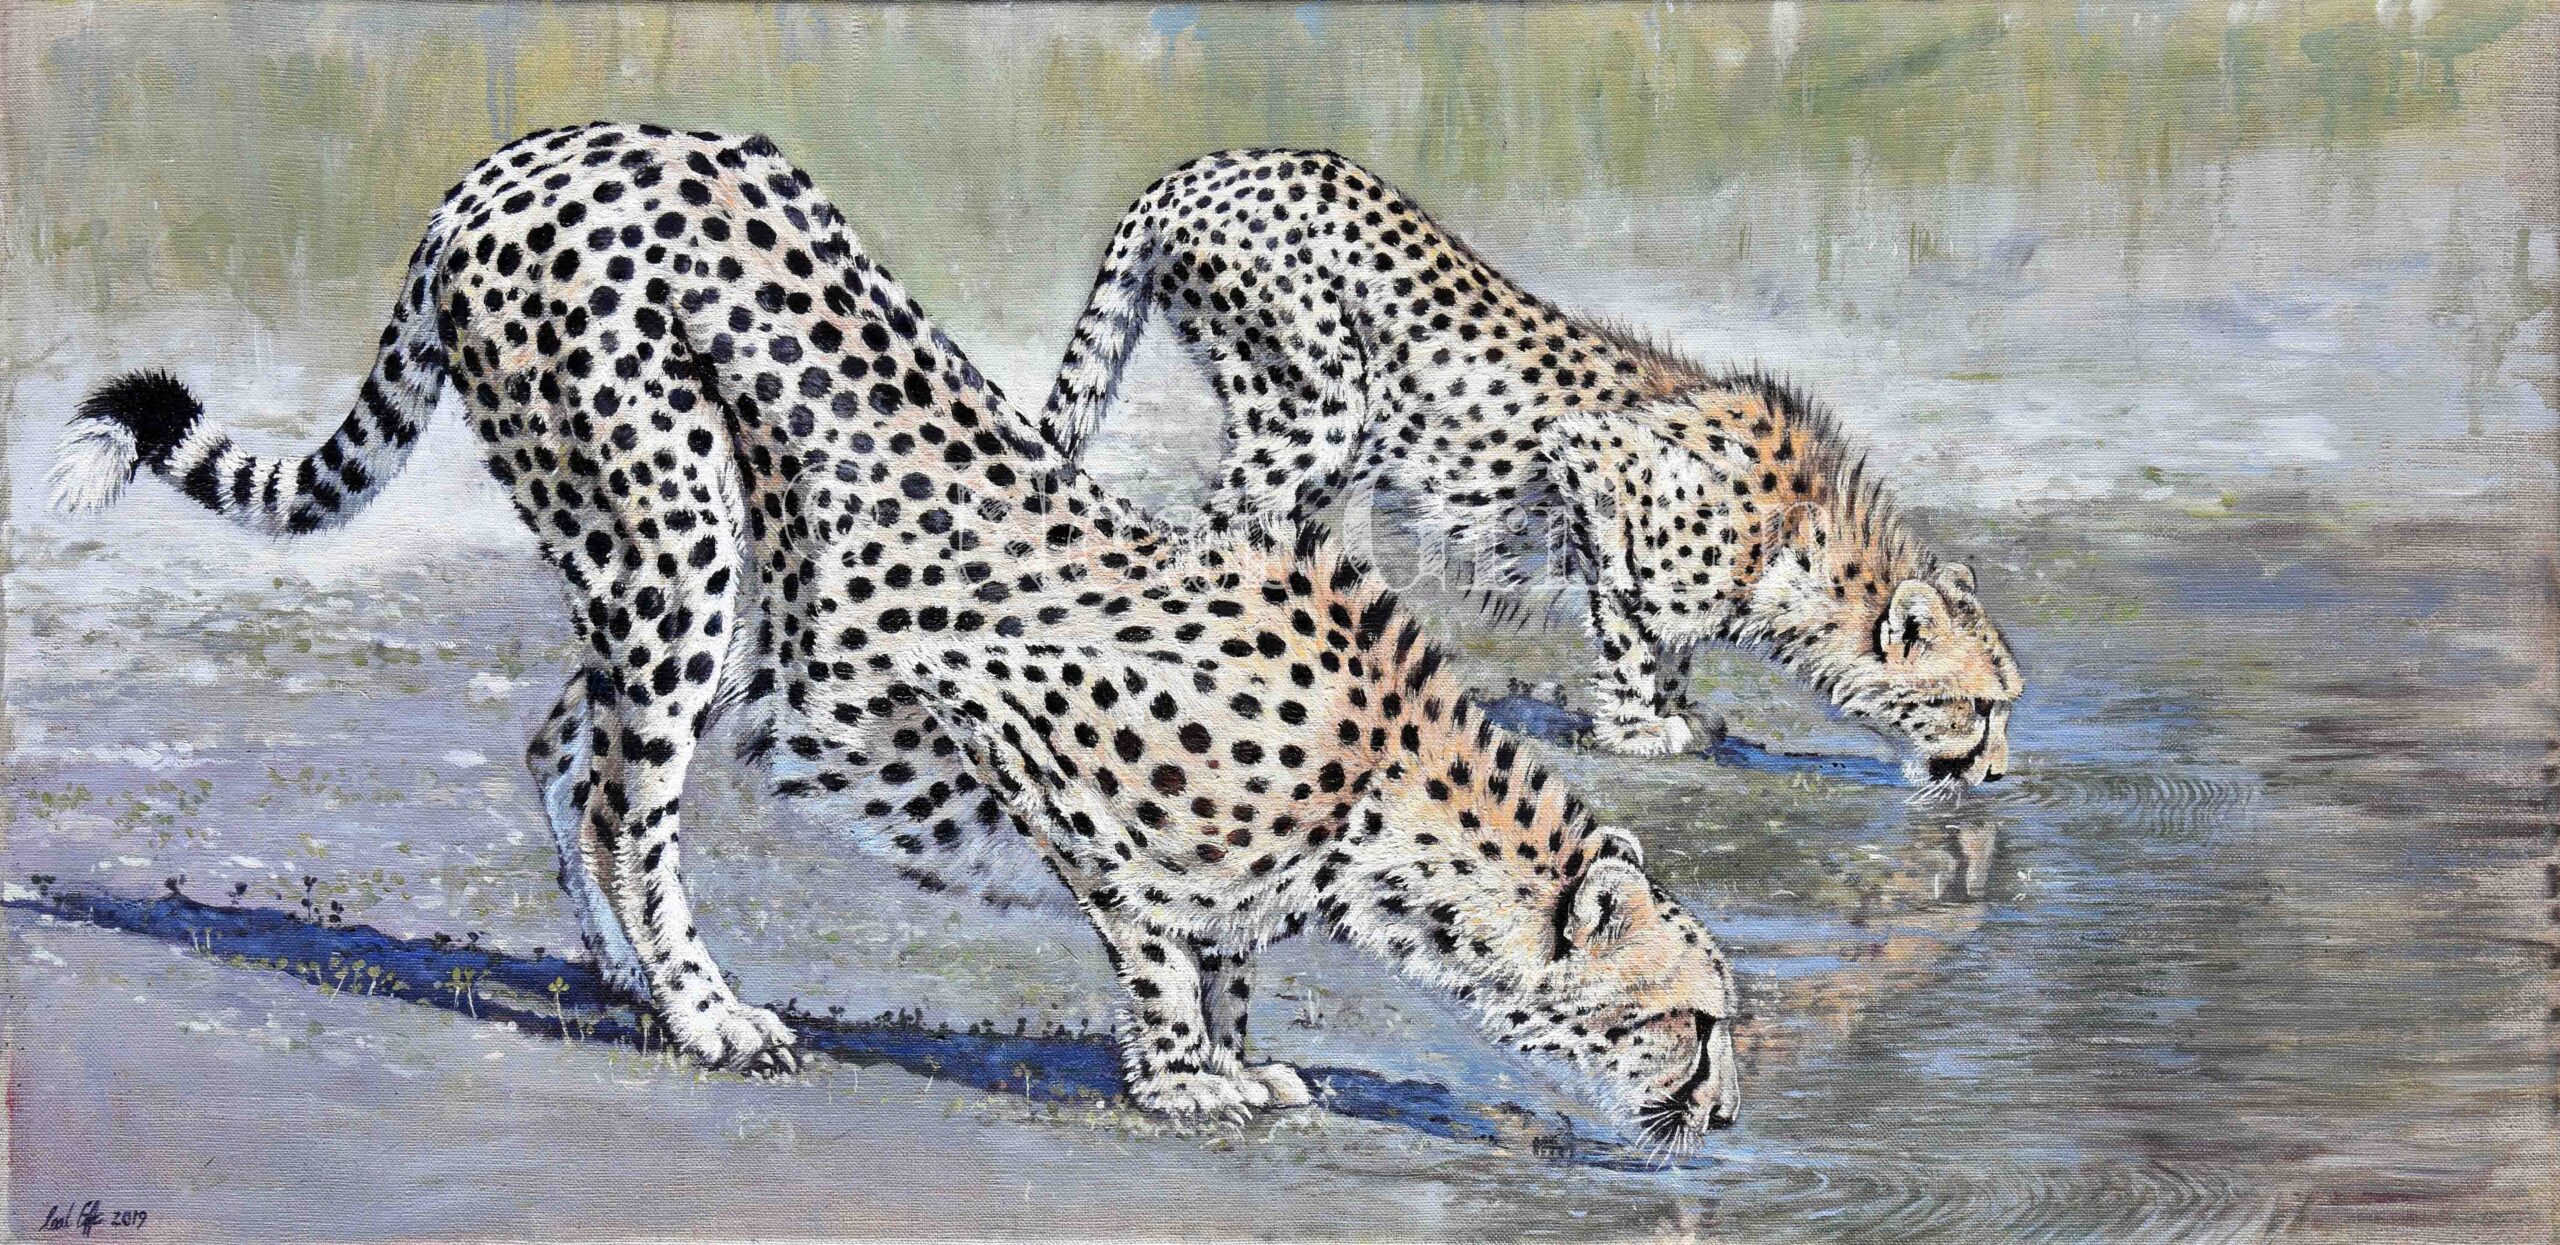 'At the Waterhole' (cheetahs) By Neal Griffin - oil on canvas - 91cm x 52cm - £950 (Inc frame)